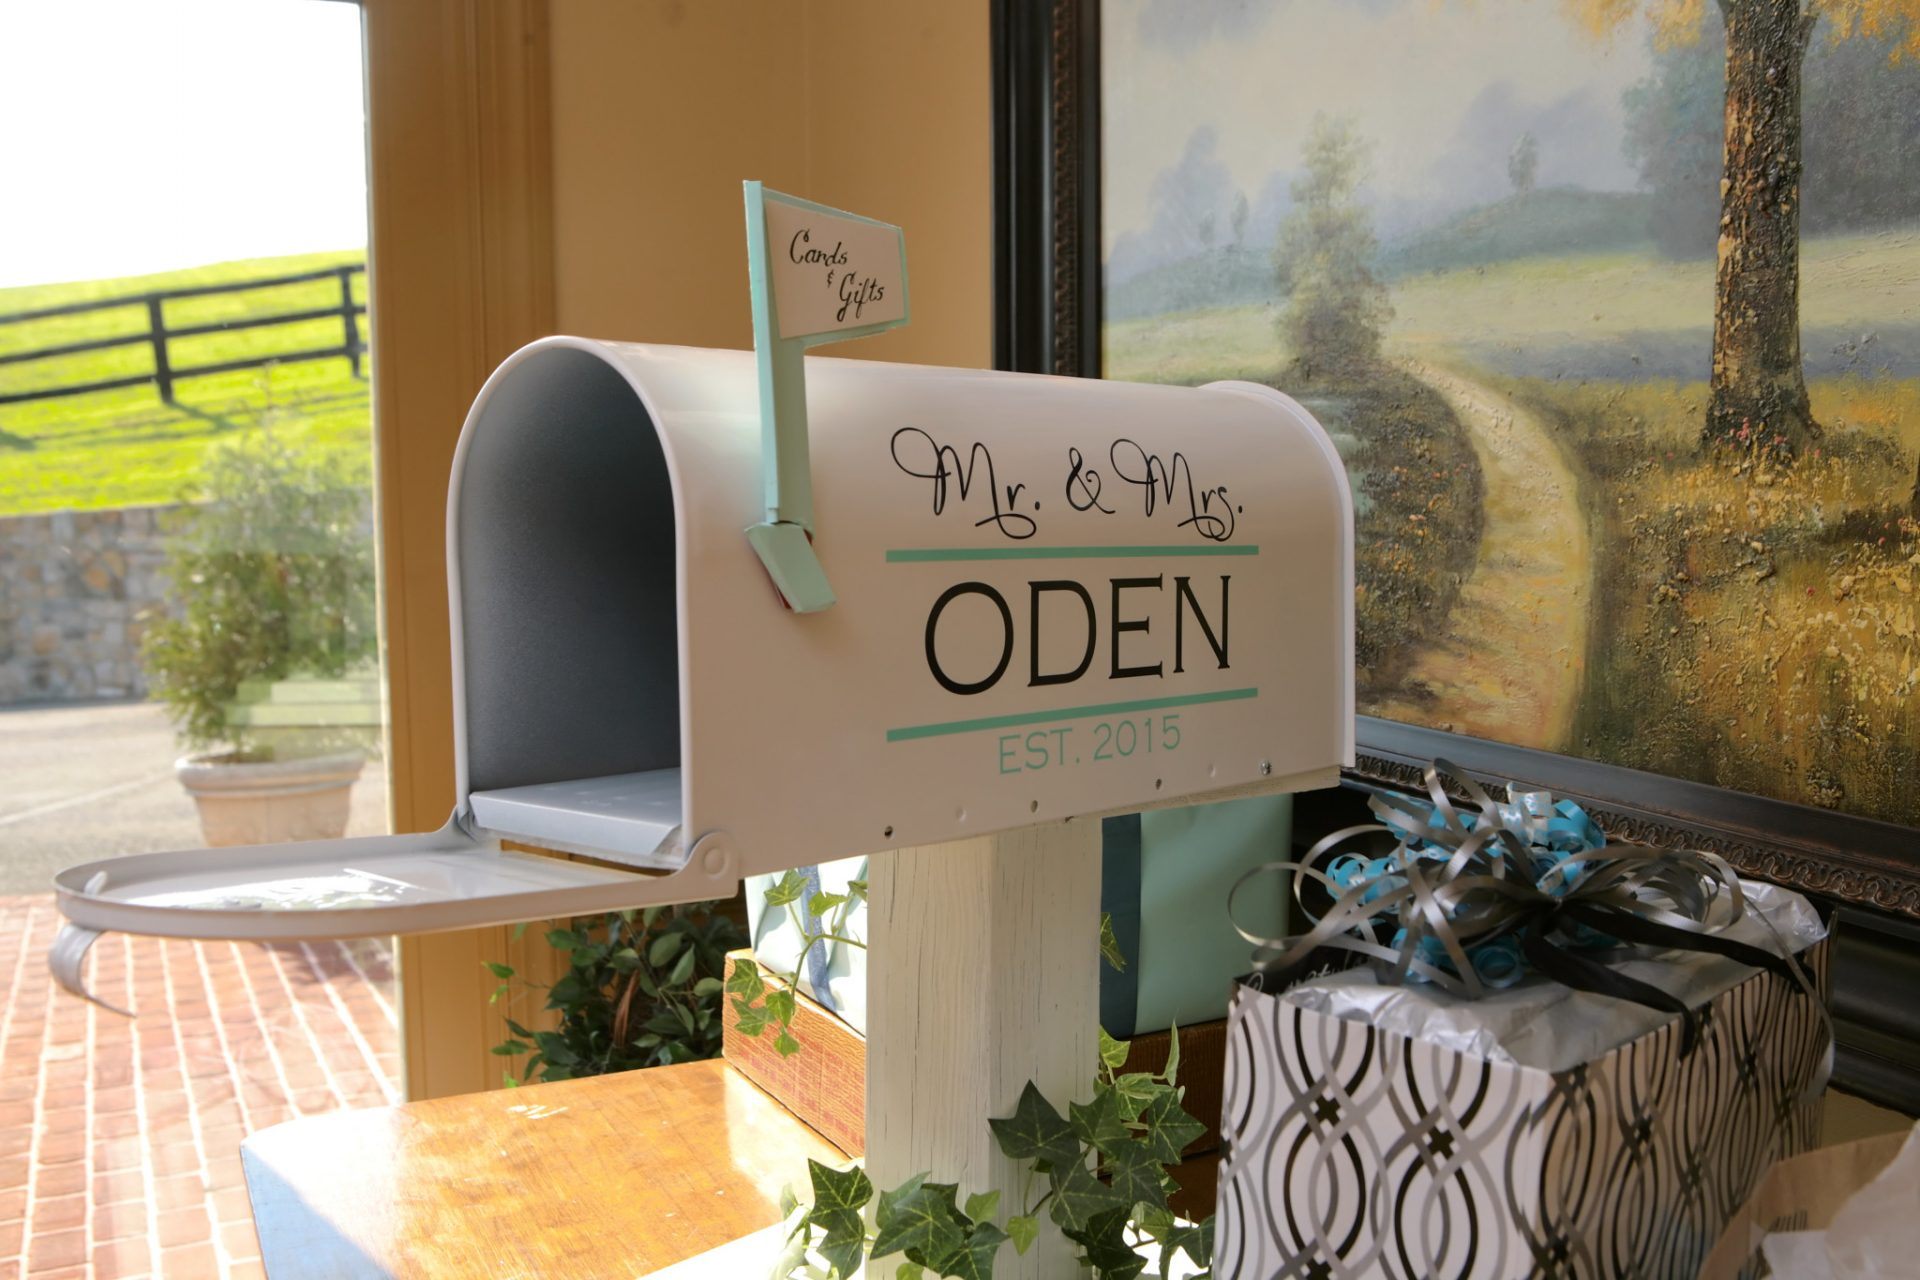 wedding message mailbox painted white with Mr. and Mrs Oden painted on side